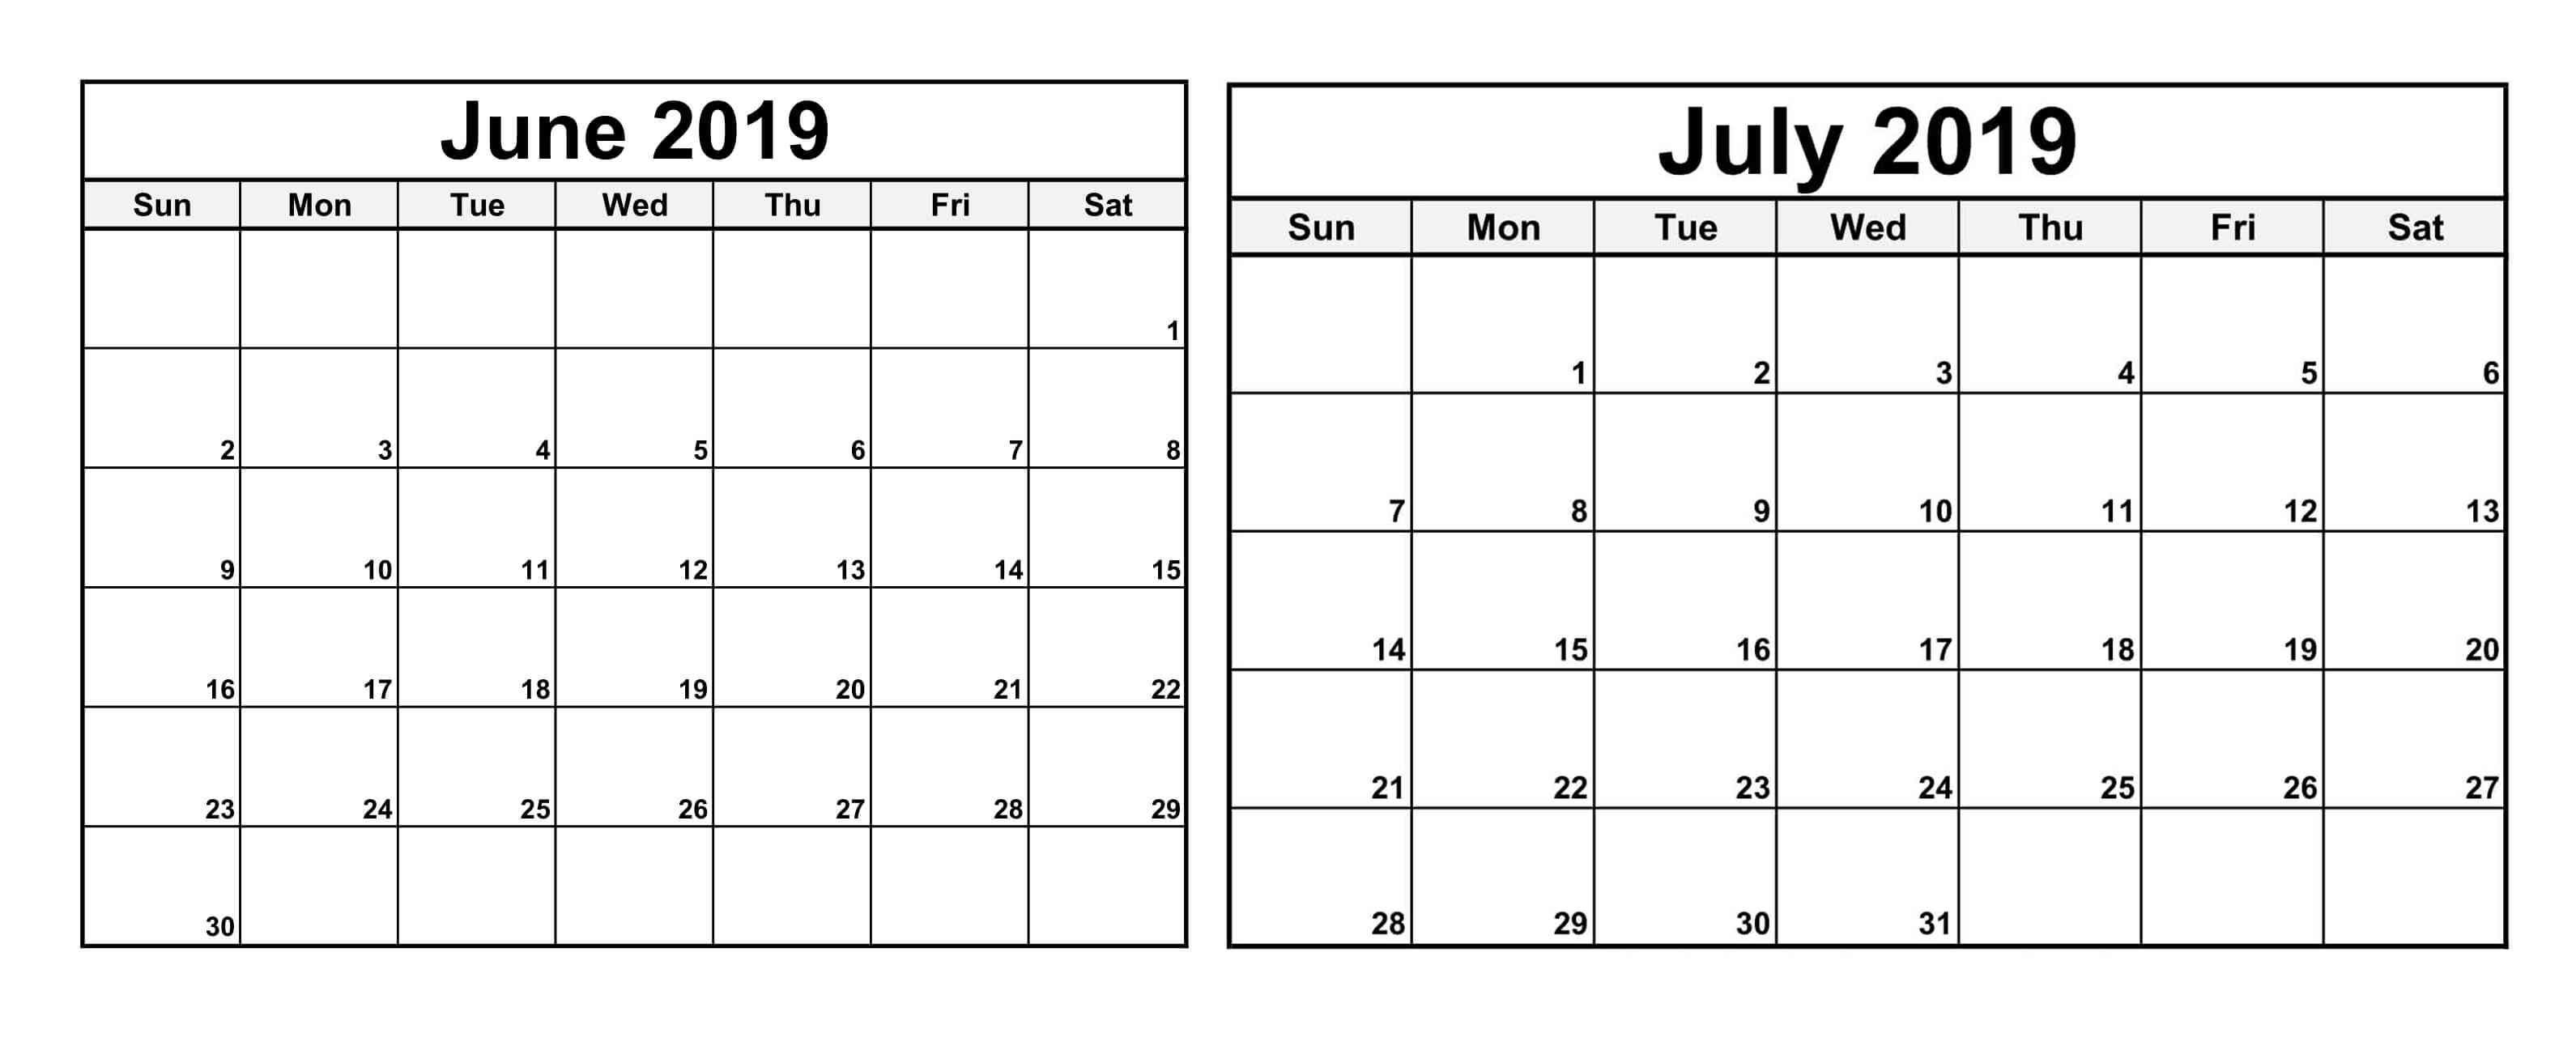 June July 2019 Calendar With Holiday – Magic Calendar 2019 Printable Calendar 2019 June July